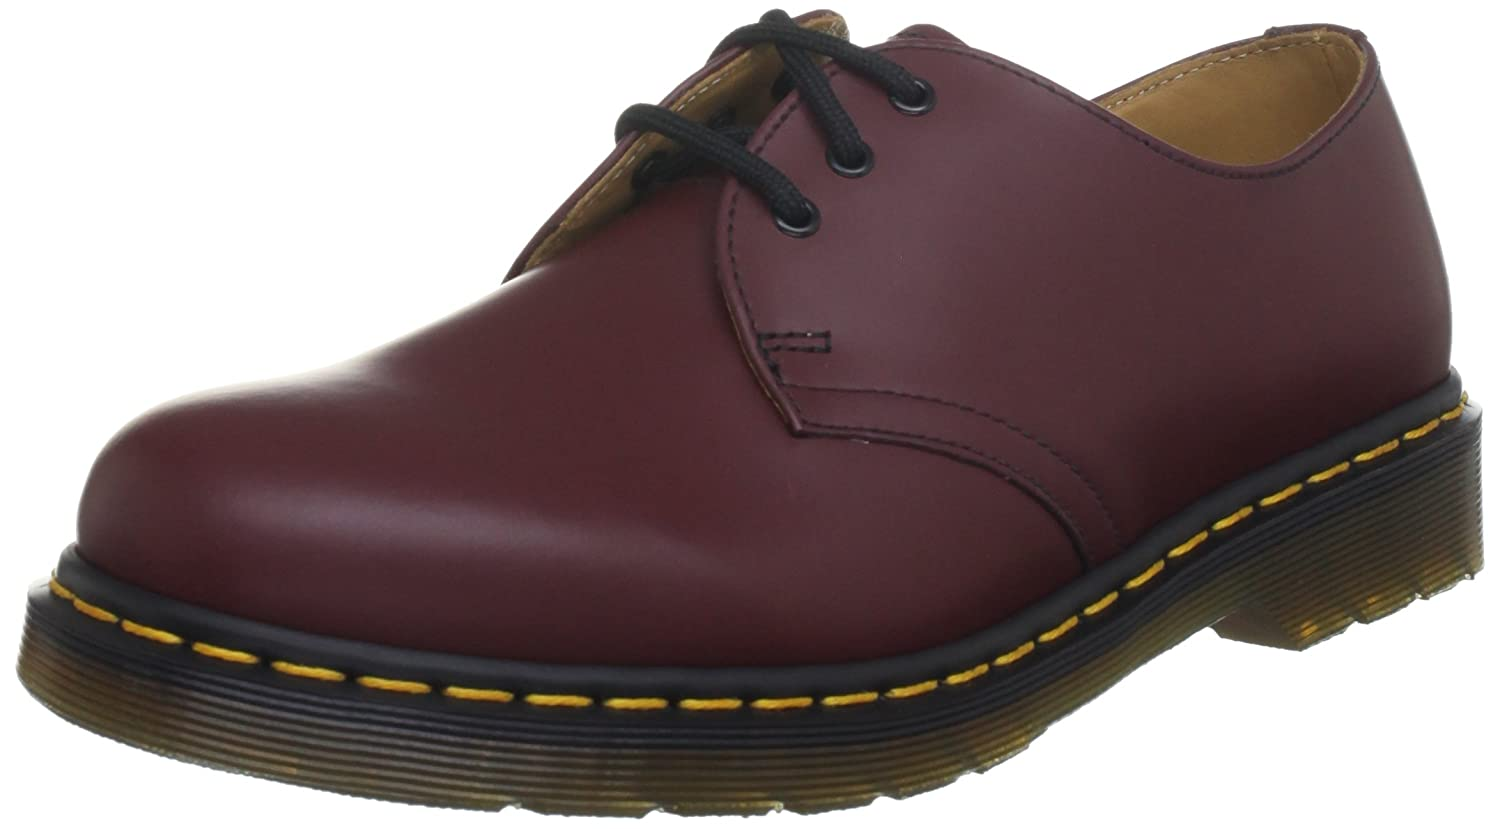 Dr. Martens 1461 Pw, Flâneurs B07FP5Q23Z mixte adulte Smooth) Pw, - noir, UK EU Rouge (Cherry Red Smooth) 0901248 - piero.space